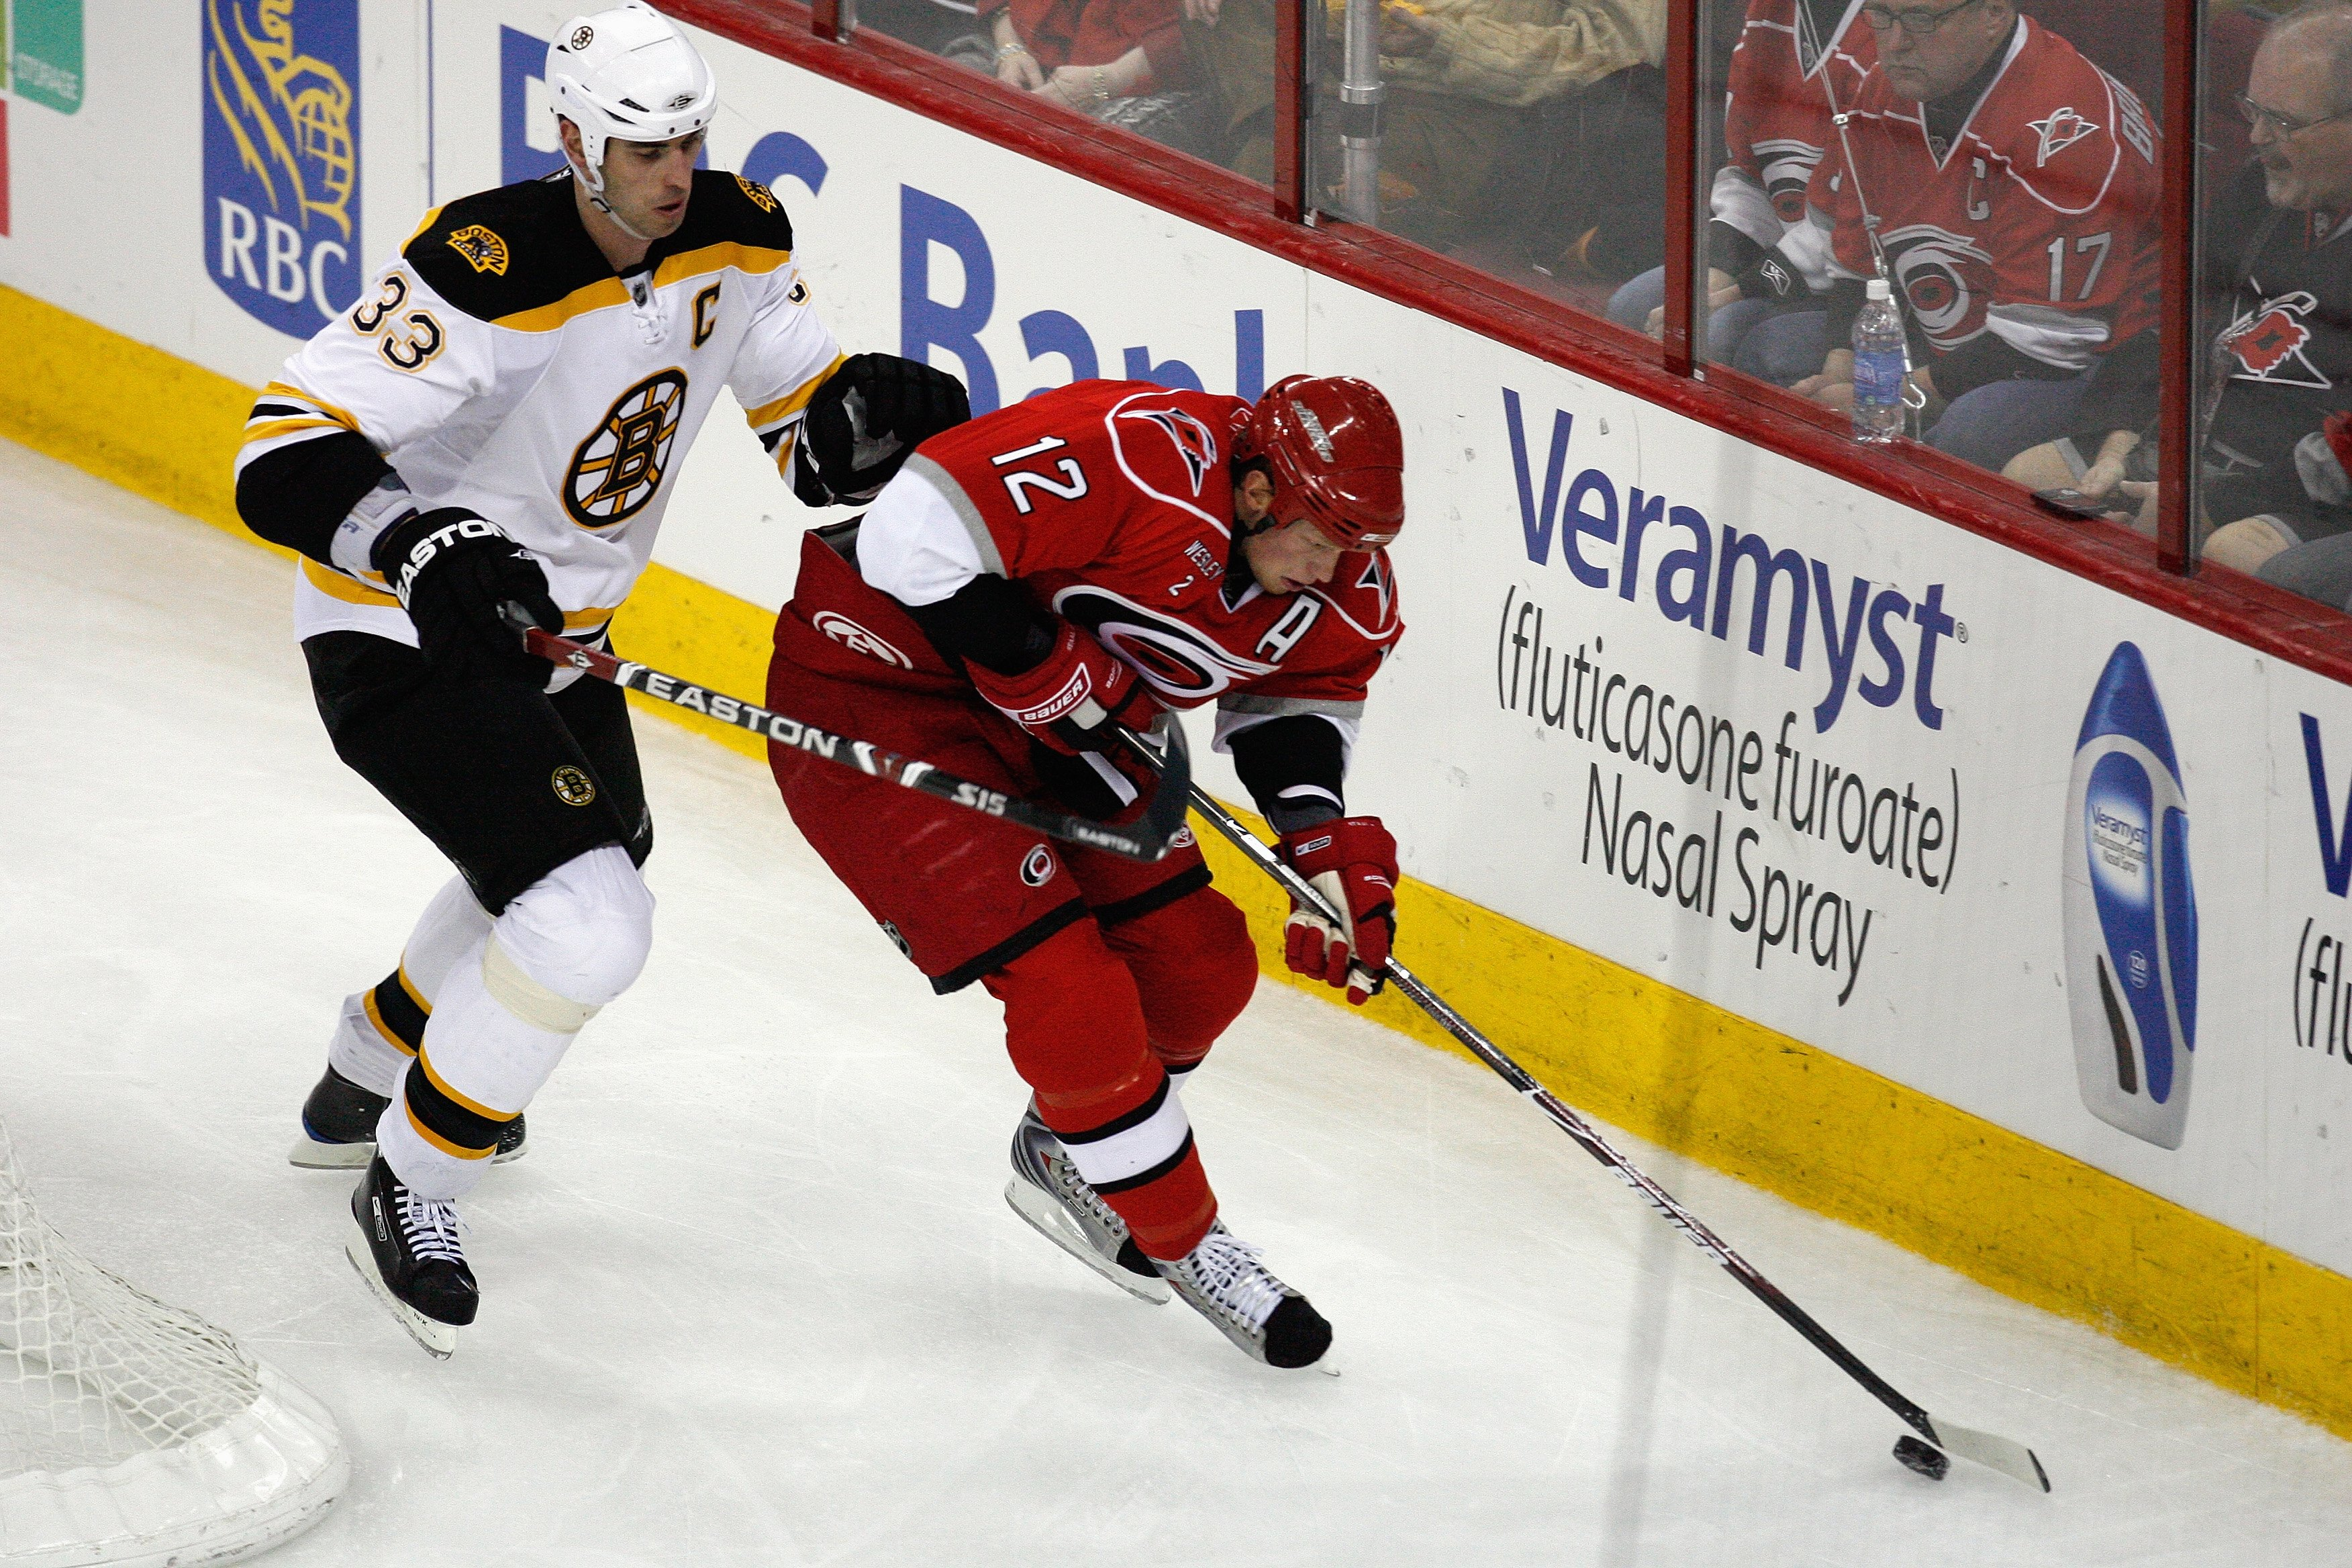 RALEIGH, NC - FEBRUARY 17:  Eric Staal #12 of the Carolina Hurricanes skates with the puck against Zdeno Chara #33 of the Boston Bruins during the game on February 17, 2009 at RBC Center in Raleigh, North Carolina.  (Photo by Kevin C. Cox/Getty Images)